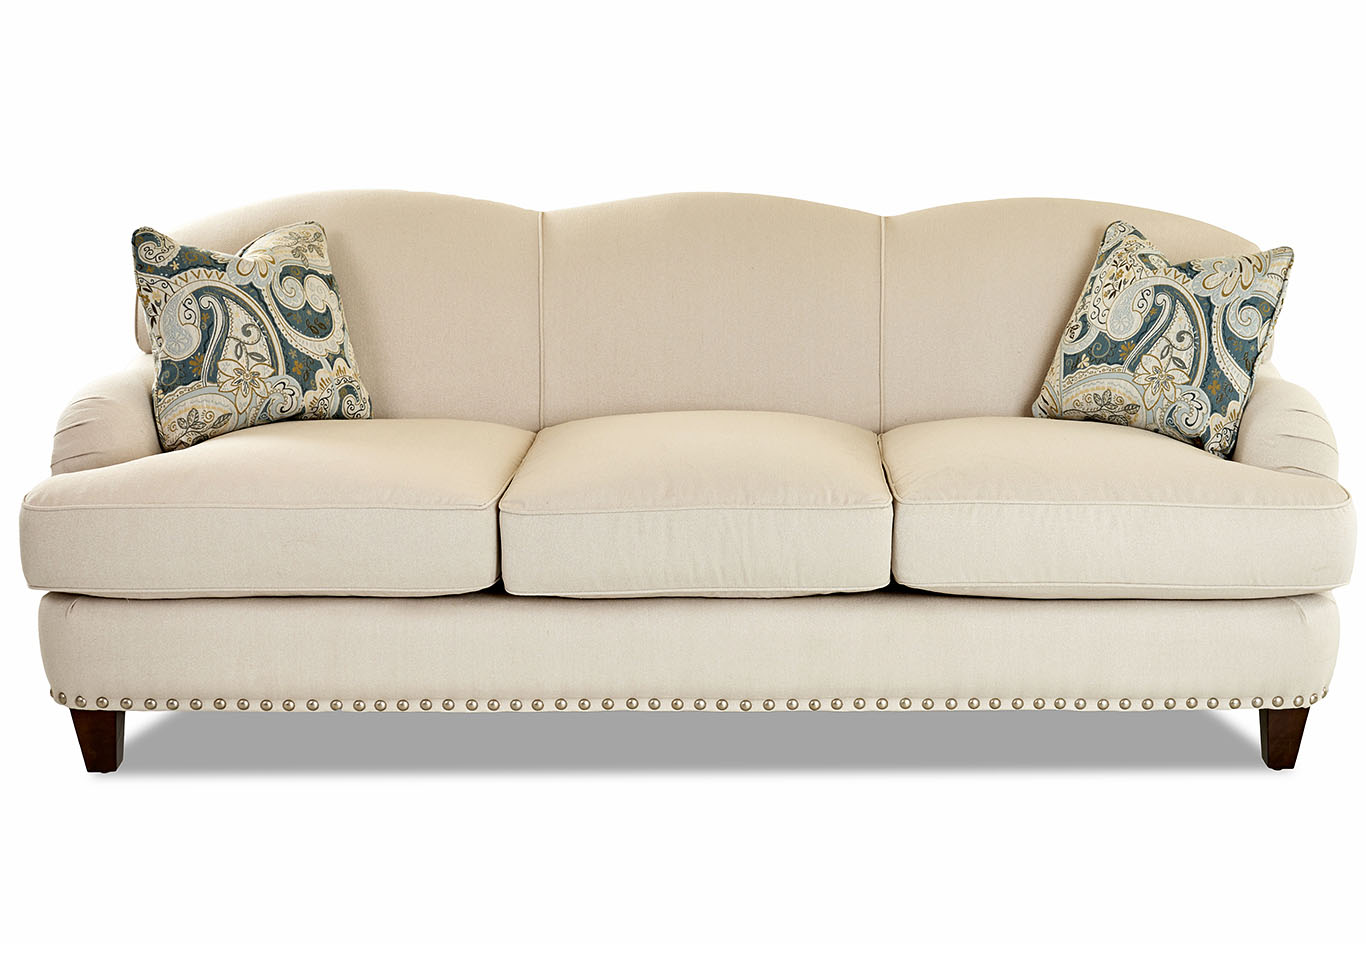 Albion Cream Fabric Sofa,Klaussner Home Furnishings